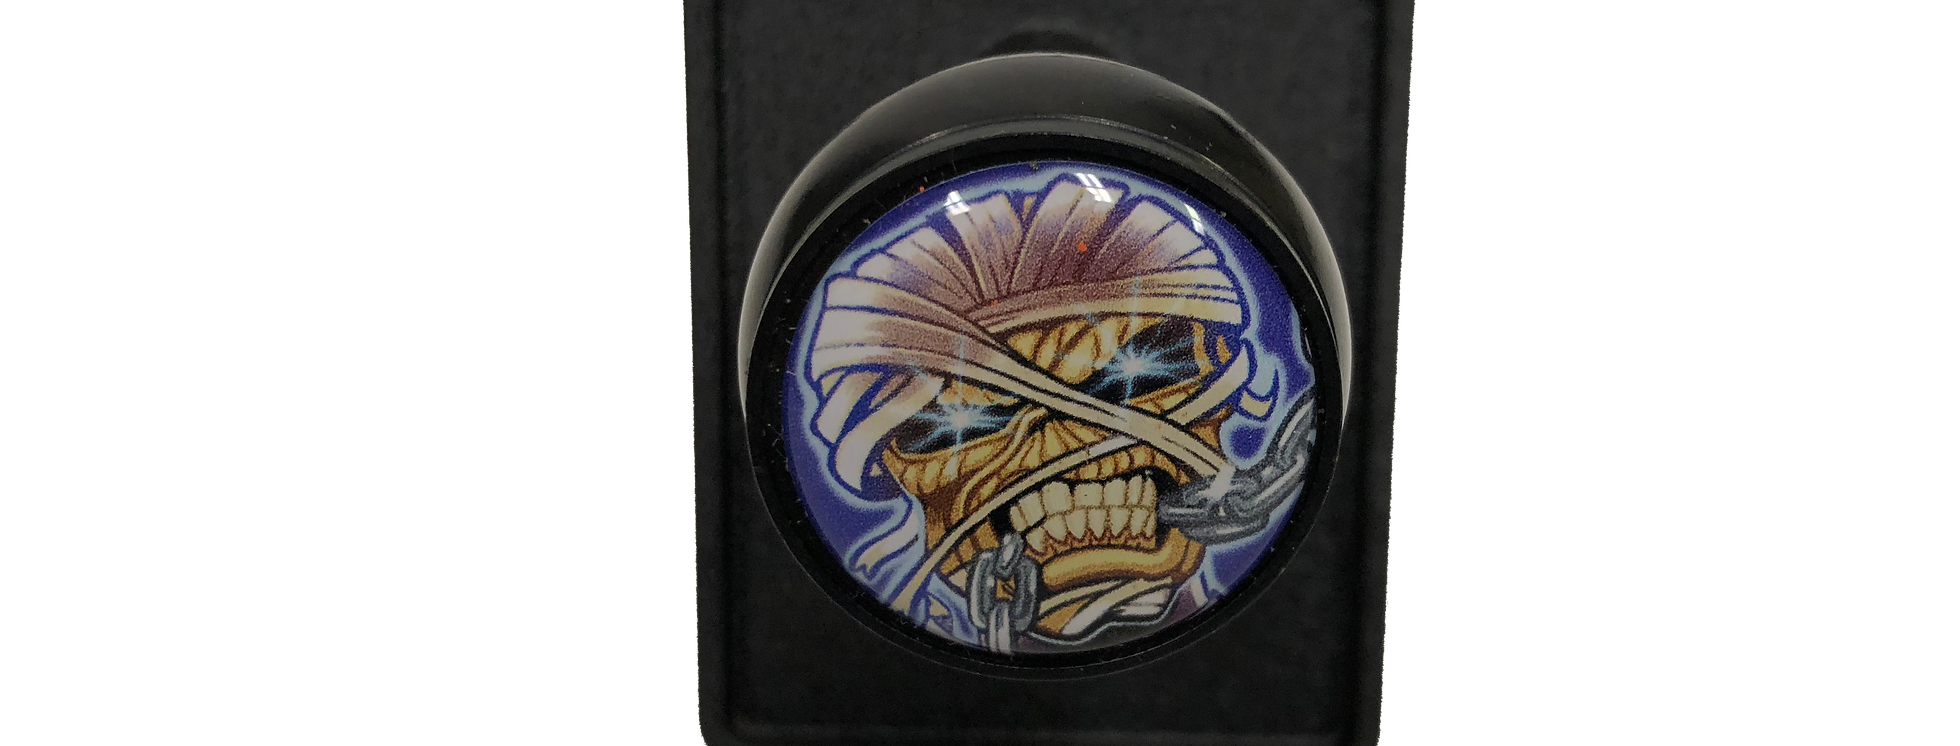 Iron Maiden Shooter Rod Knob | Stern Pinball